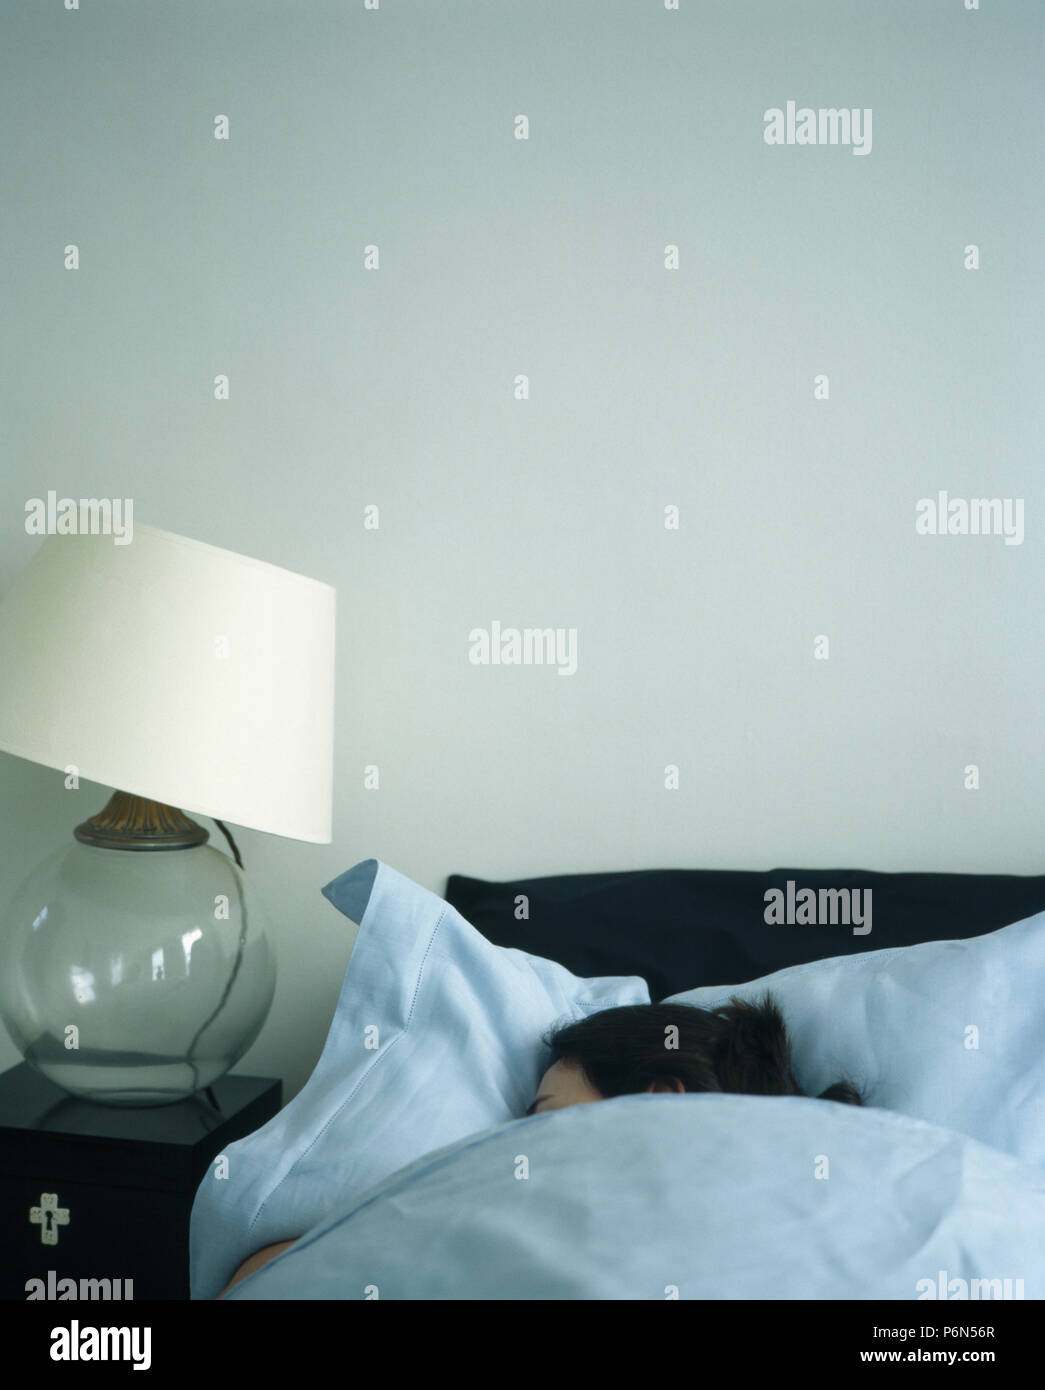 Sleeping female in comfy bed - Stock Image